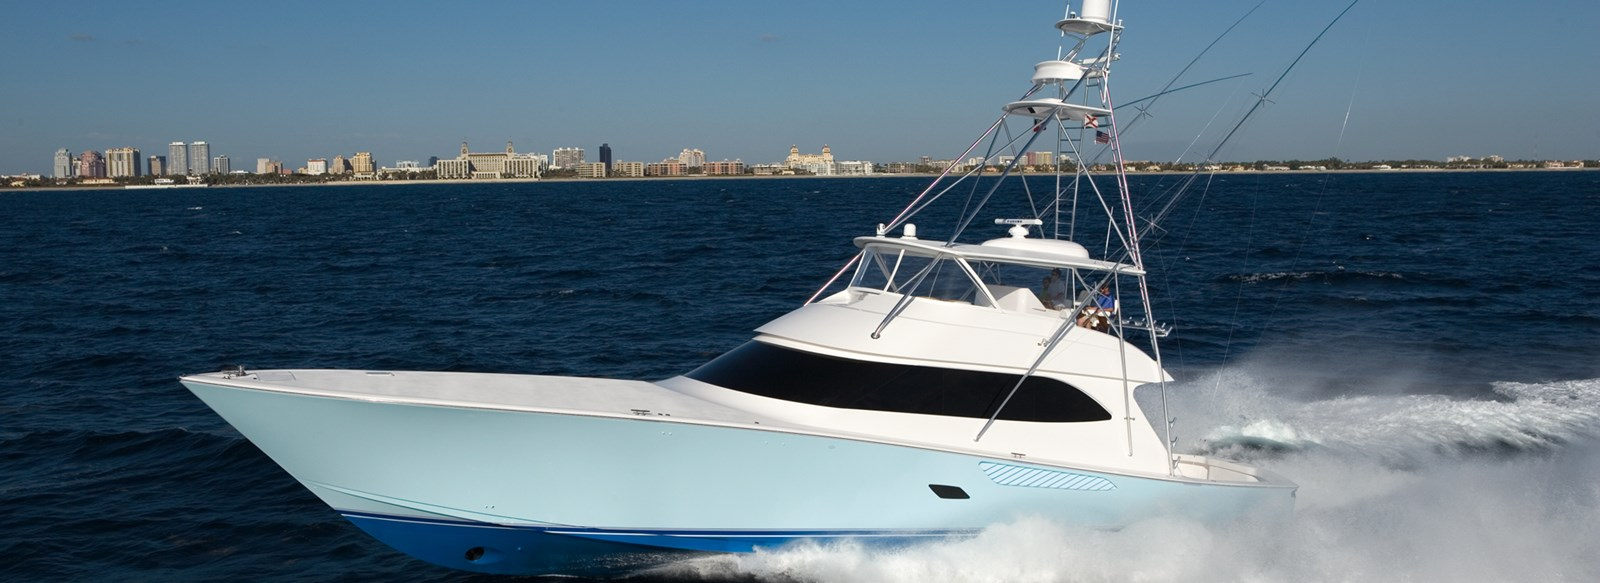 New Viking 82 Convertible Yachts For Sale